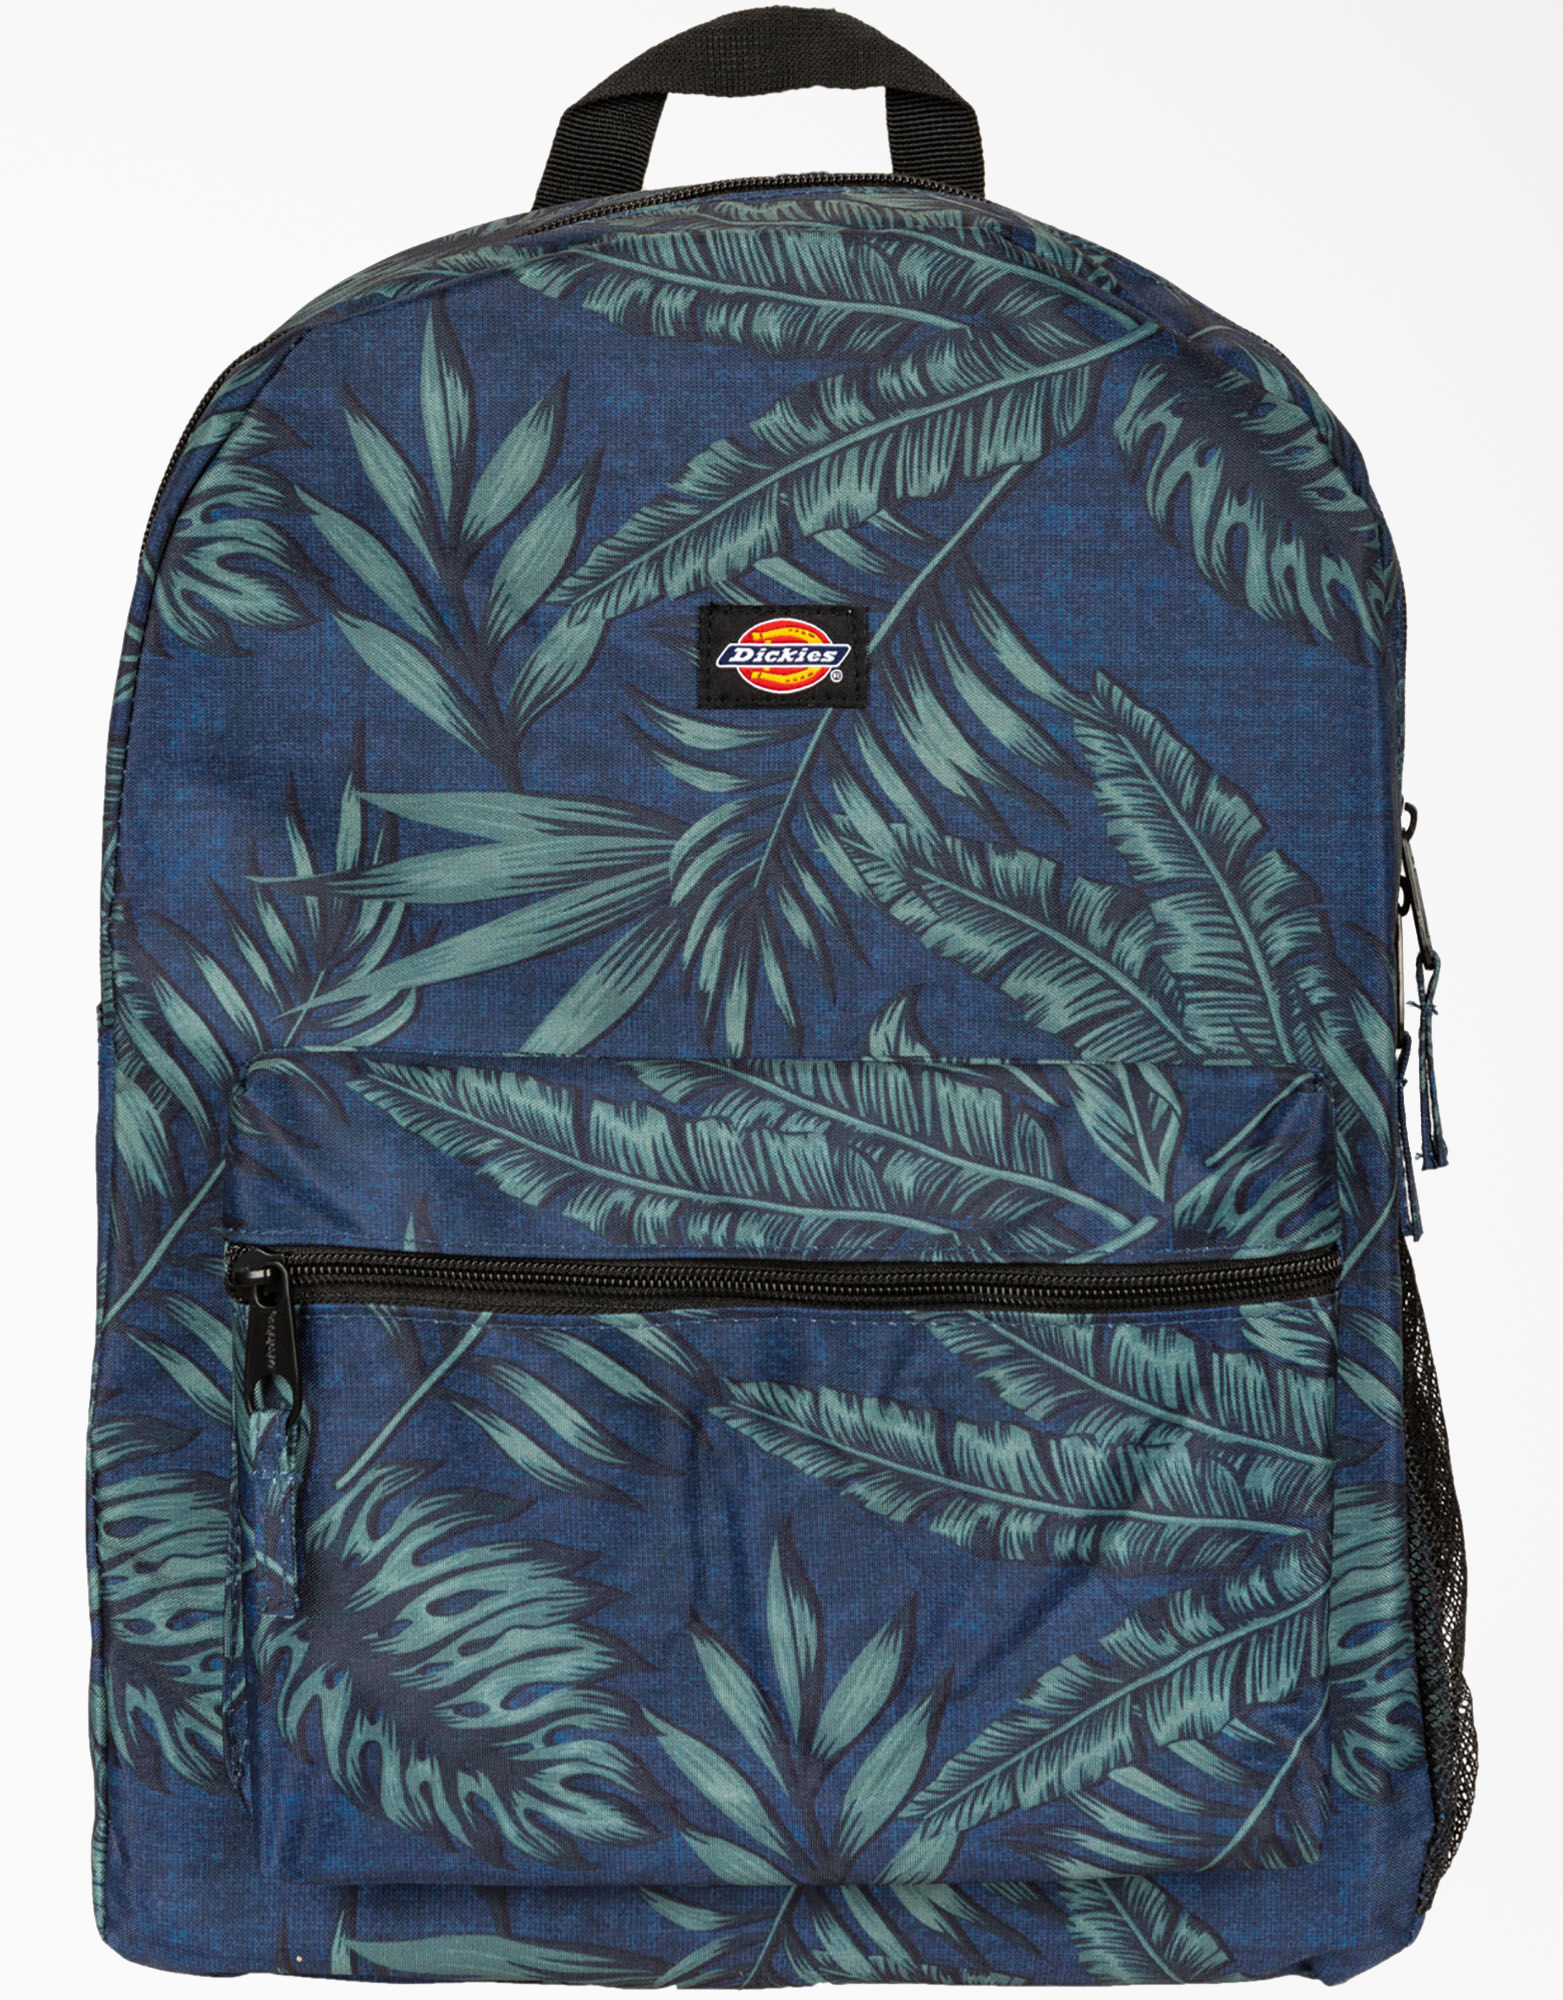 Student Tropical Backpack - Navy Green Tropical (N1T)